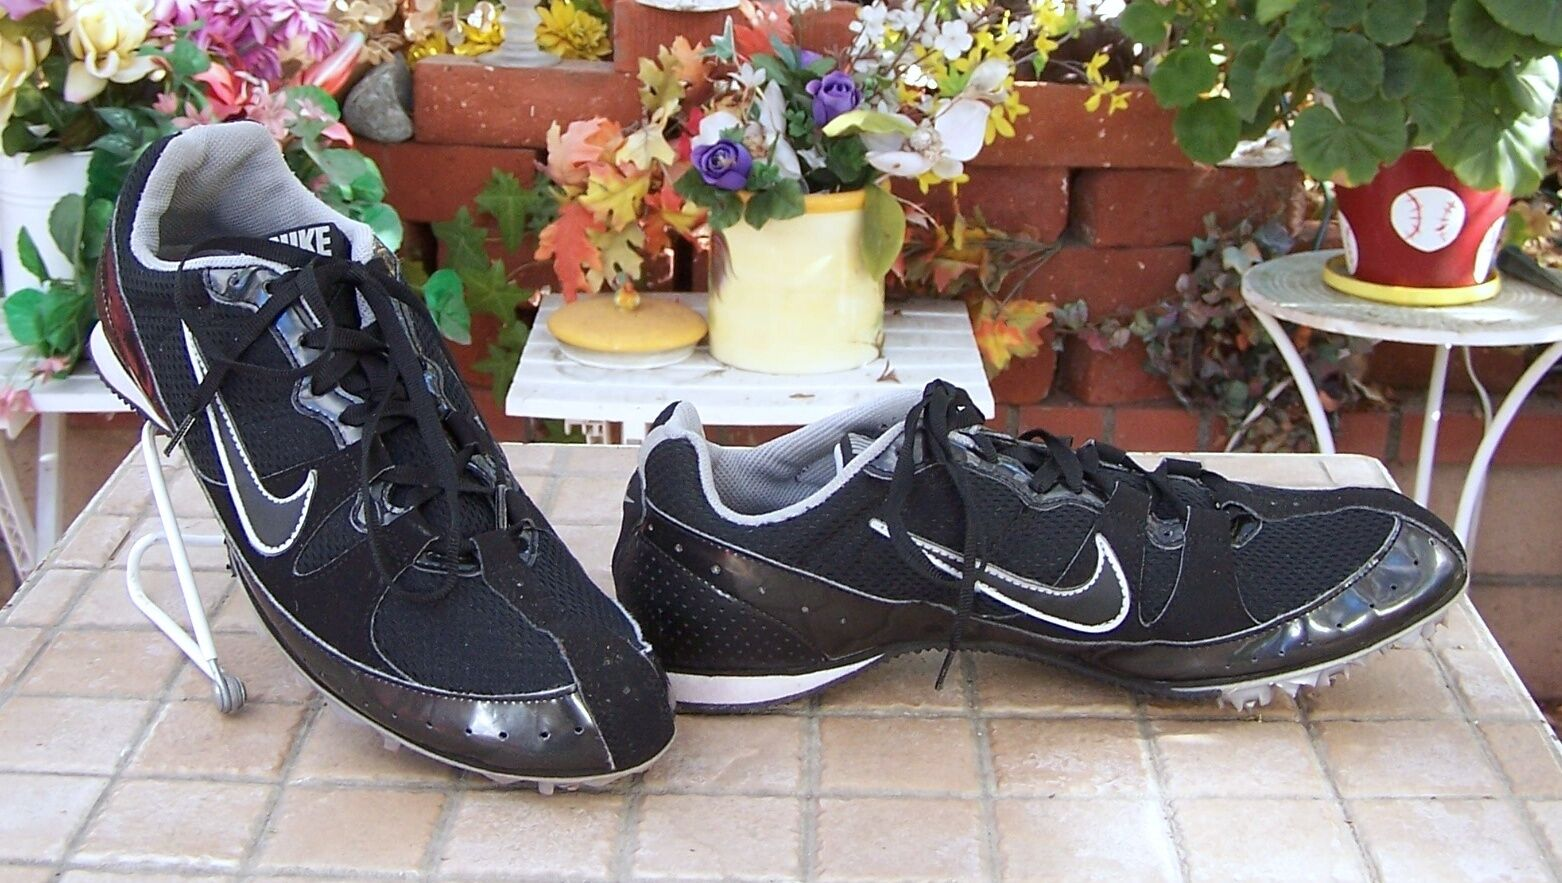 NIKE  TRACK FIELD RUNNING CLEATS SHOES 383823 ZOOM RIVAL  MEN'S BLACK SIZE 8.5 Seasonal clearance sale